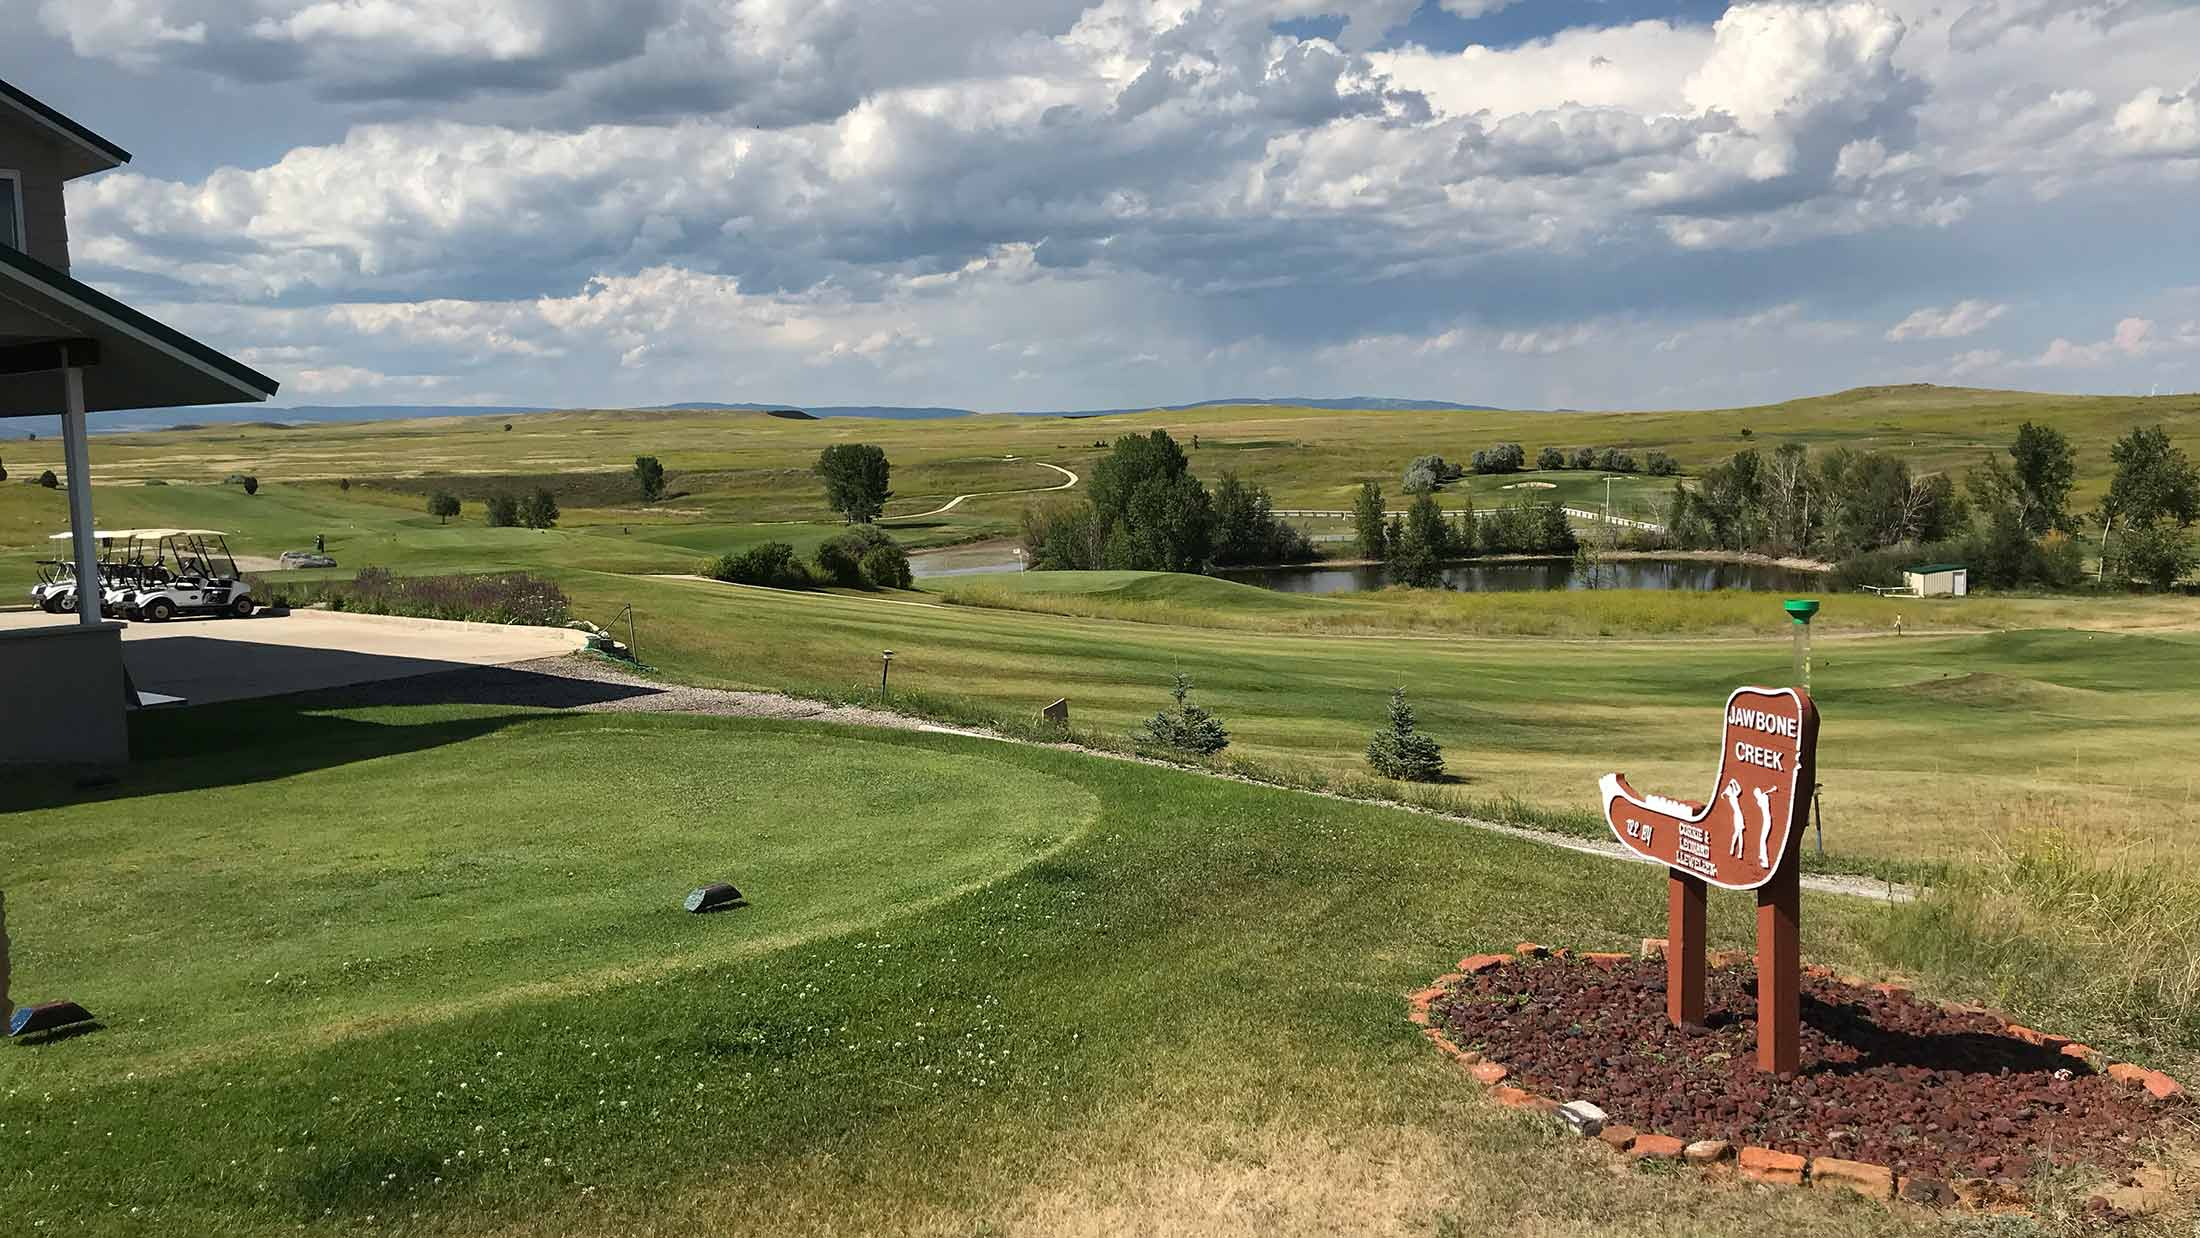 9 hole golf course, clubhouse, driving range and practice green located in Harlowton, Montana on Highway 12 in Wheatland County.